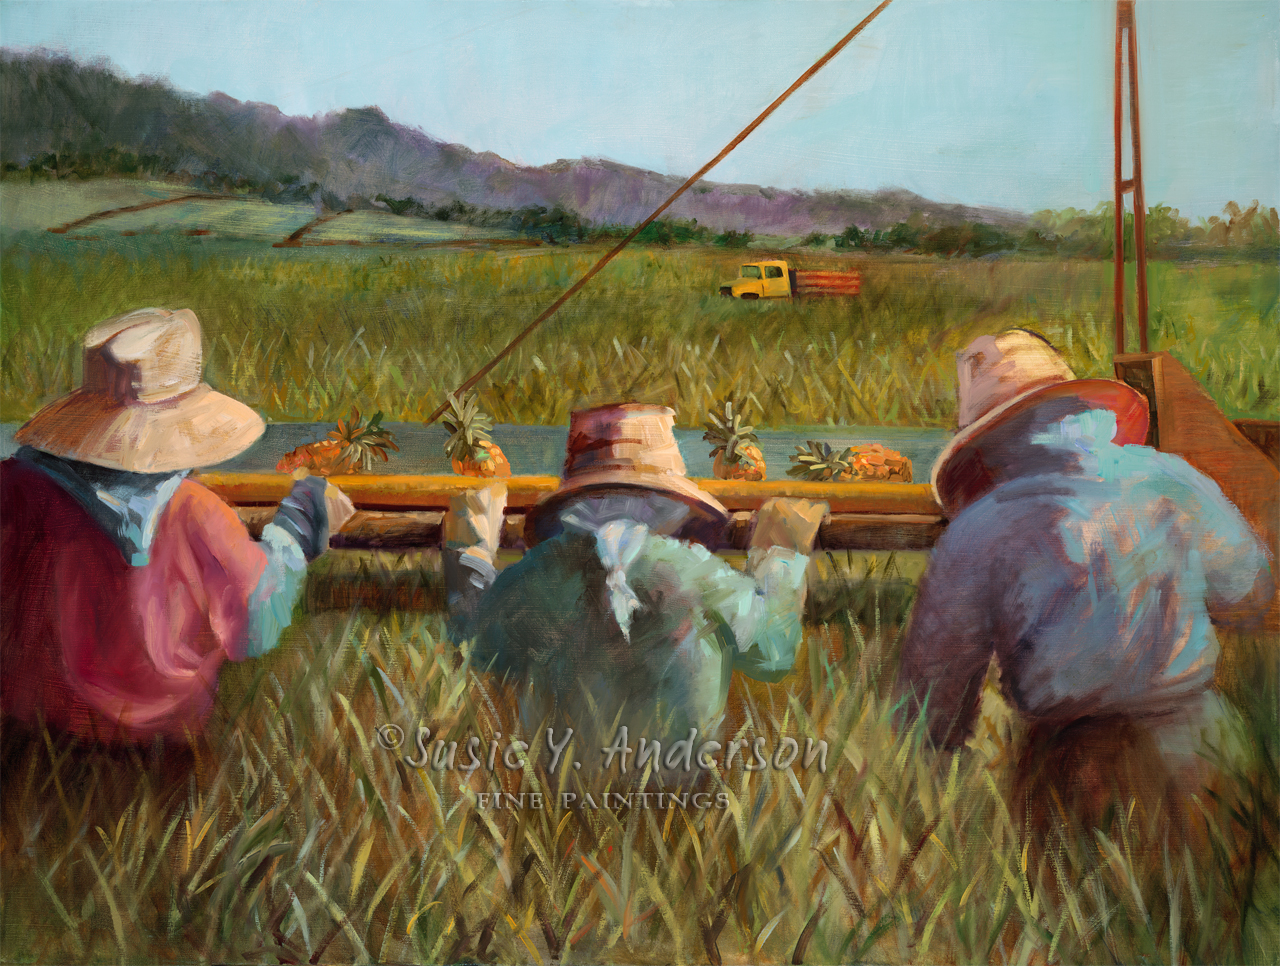 Harvest Time by Susie Anderson men harvesting in the fields in Hawaii